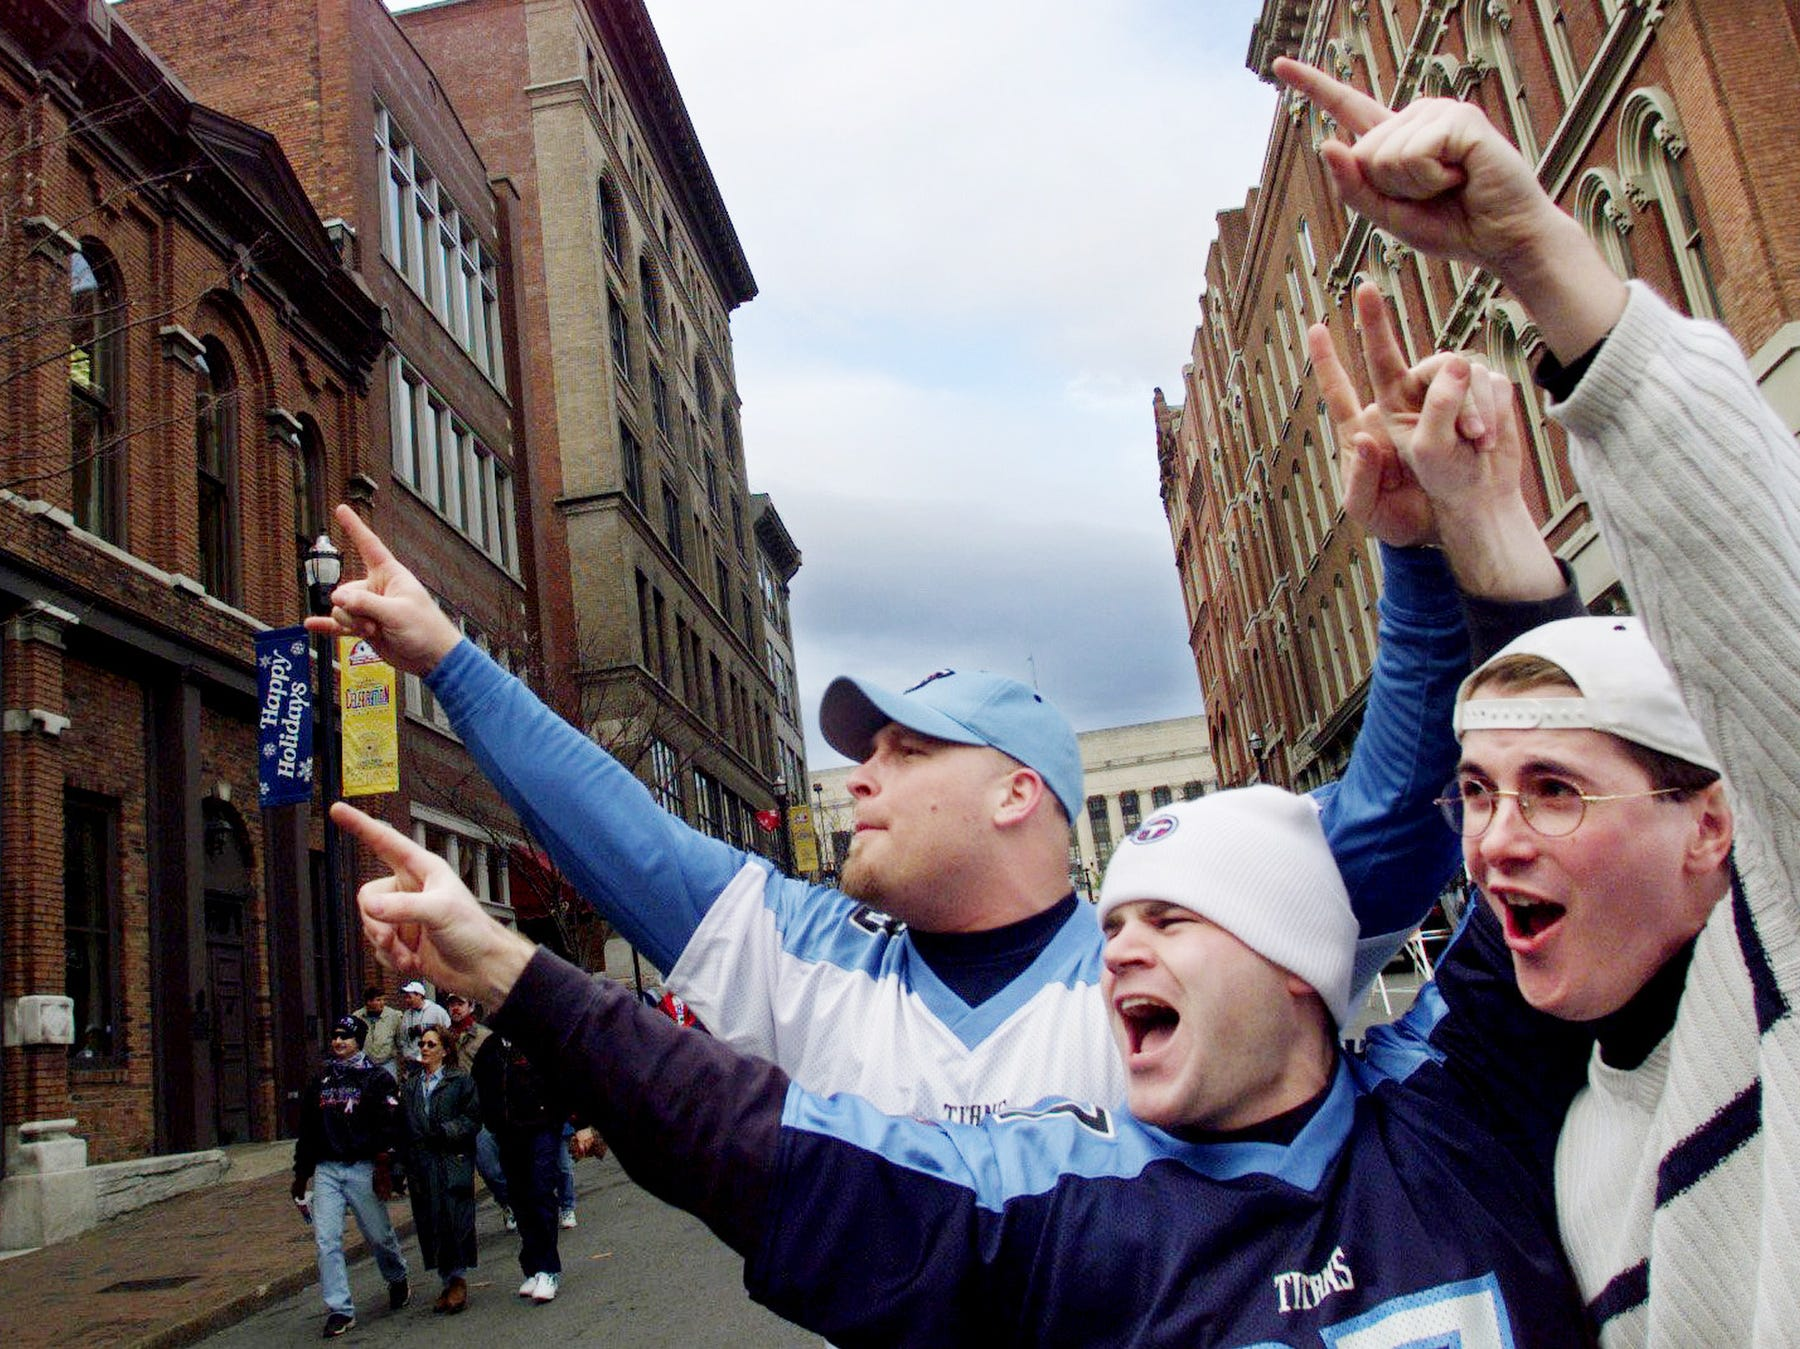 Barry Vargas, left, of Washington, D.C., Mike Steplowski and Jason Fitz, both of Antioch, go wild on Second Avenue with fellow fans in a second-story window as they walked back from the Adelphia Coliseum after the Tennessee Titans comeback playoff win over the Buffalo Bills Jan. 8, 2000.